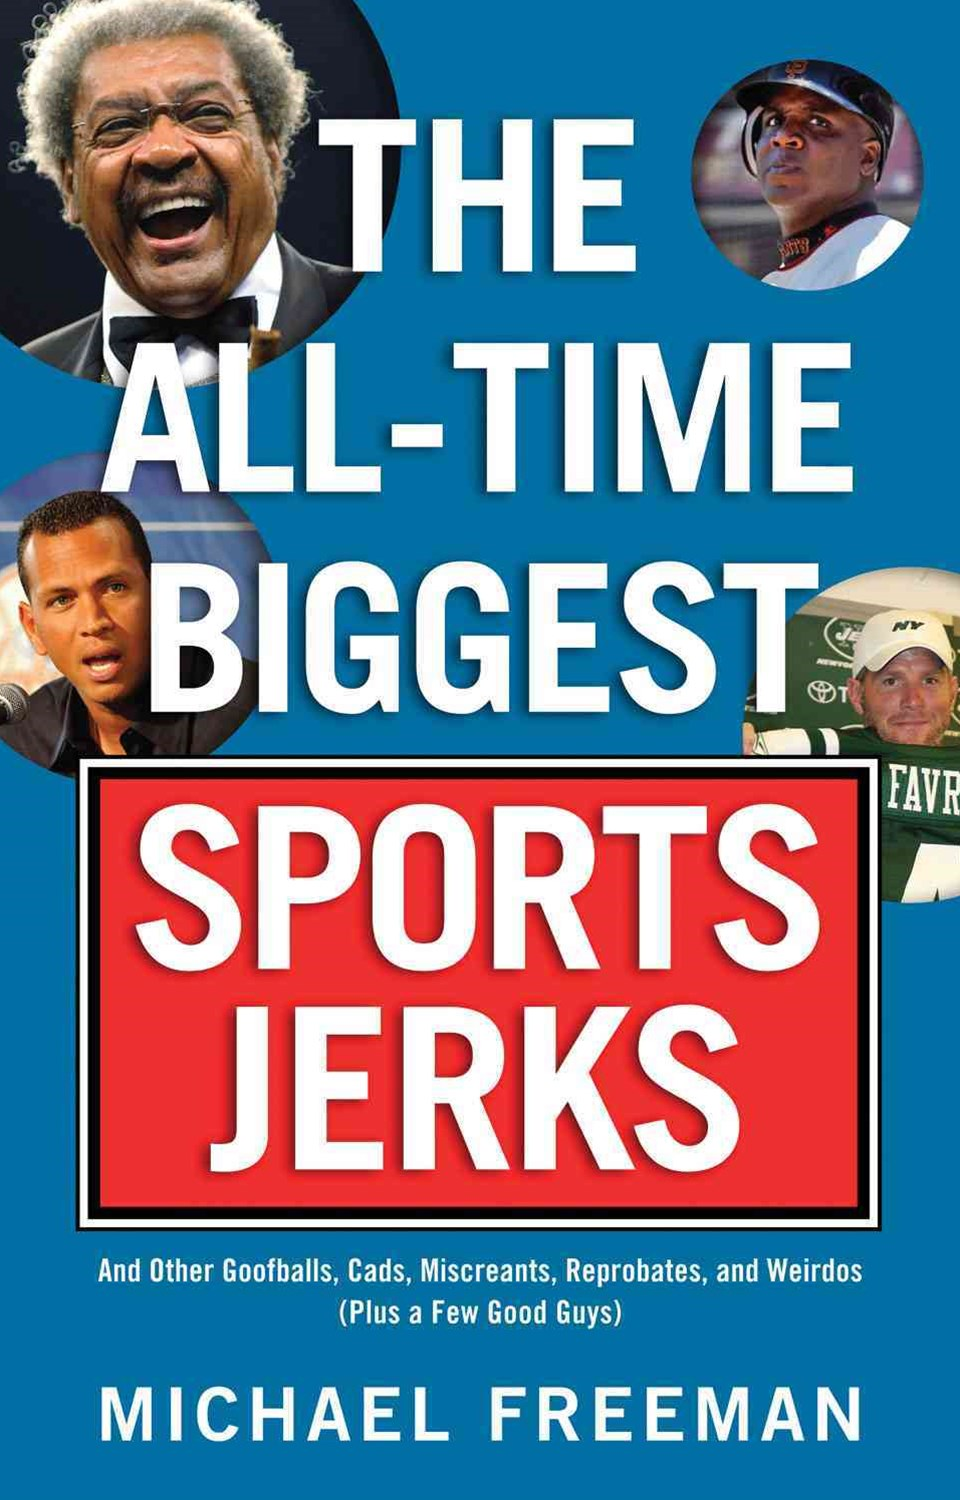 The All-Time Biggest Sports Jerks